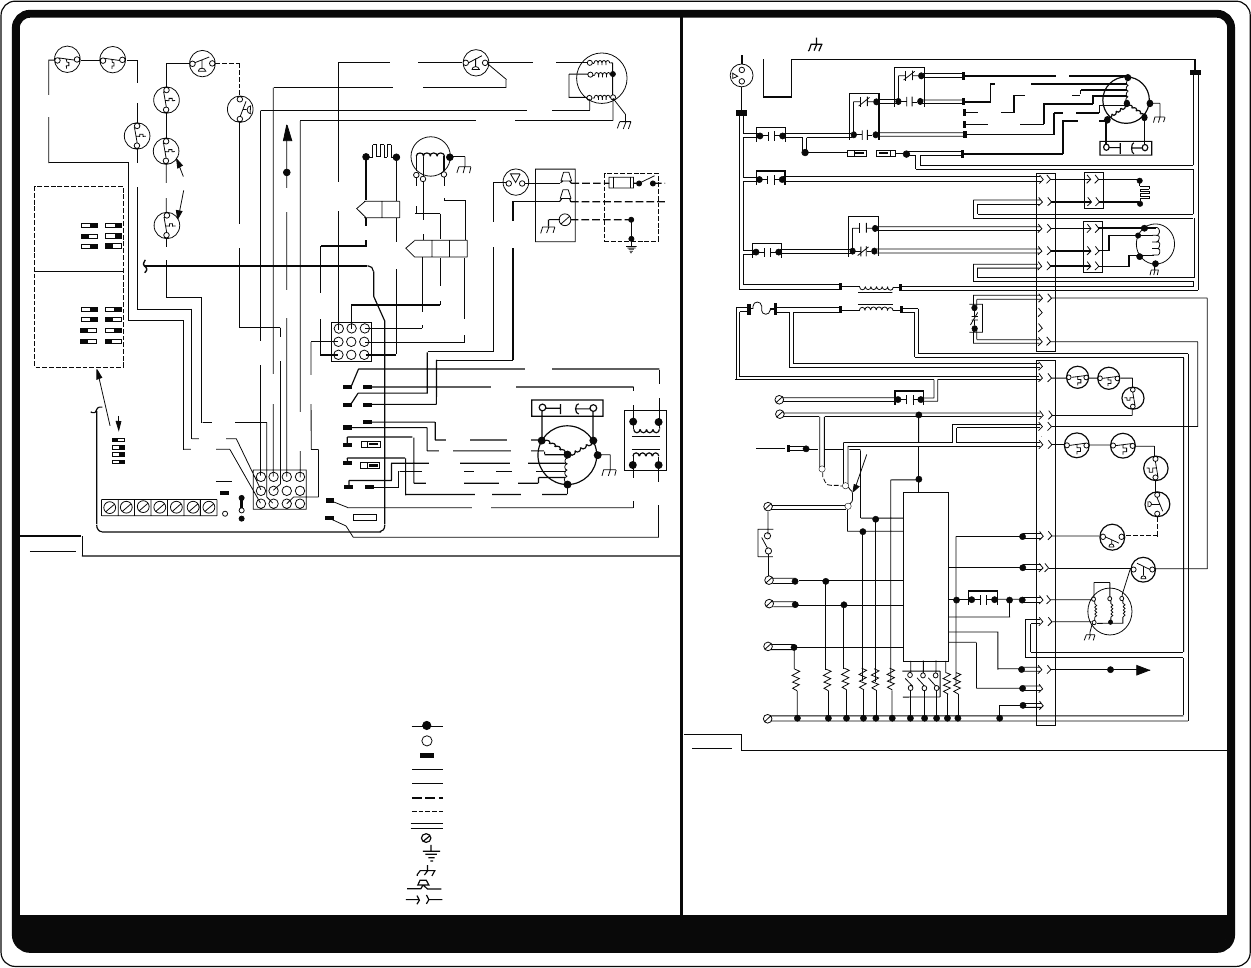 c2b73d22 c45f 43df a574 b6e707ea0cc7 bg8 page 8 of bryant furnace 330jav user guide manualsonline com gas interlock system wiring diagram at soozxer.org